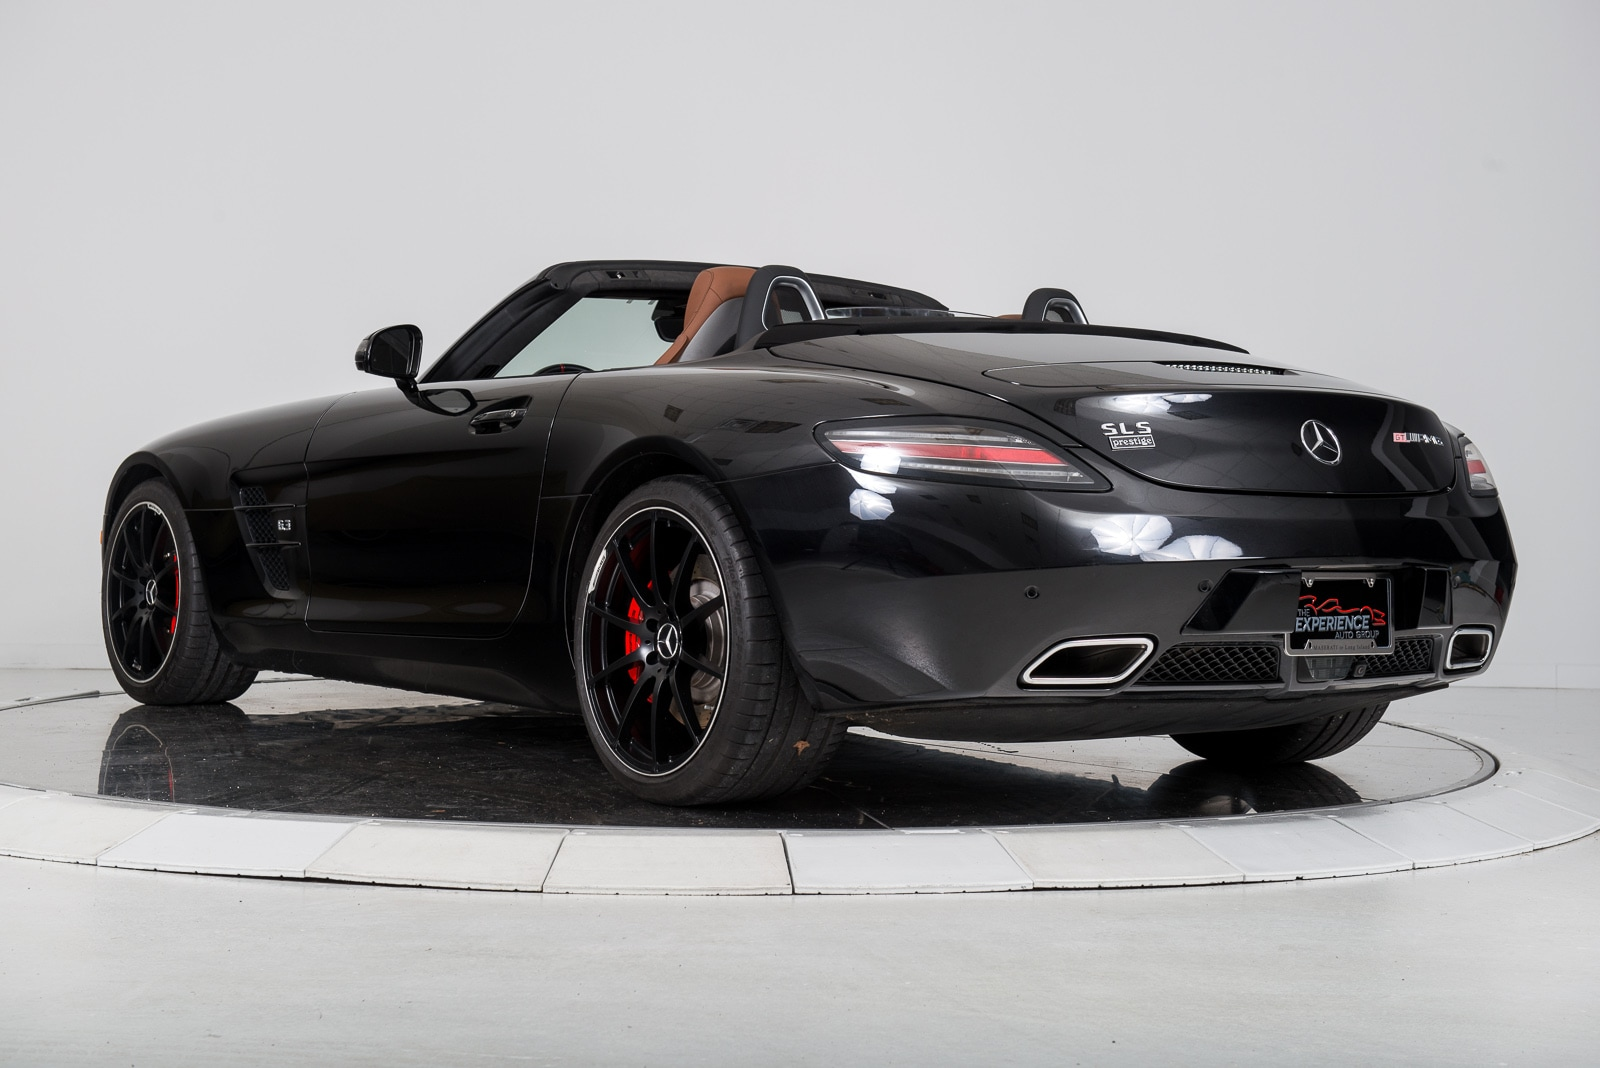 Used 2013 mercedes benz sls amg gt roadster for sale for Used mercedes benz amg gt for sale